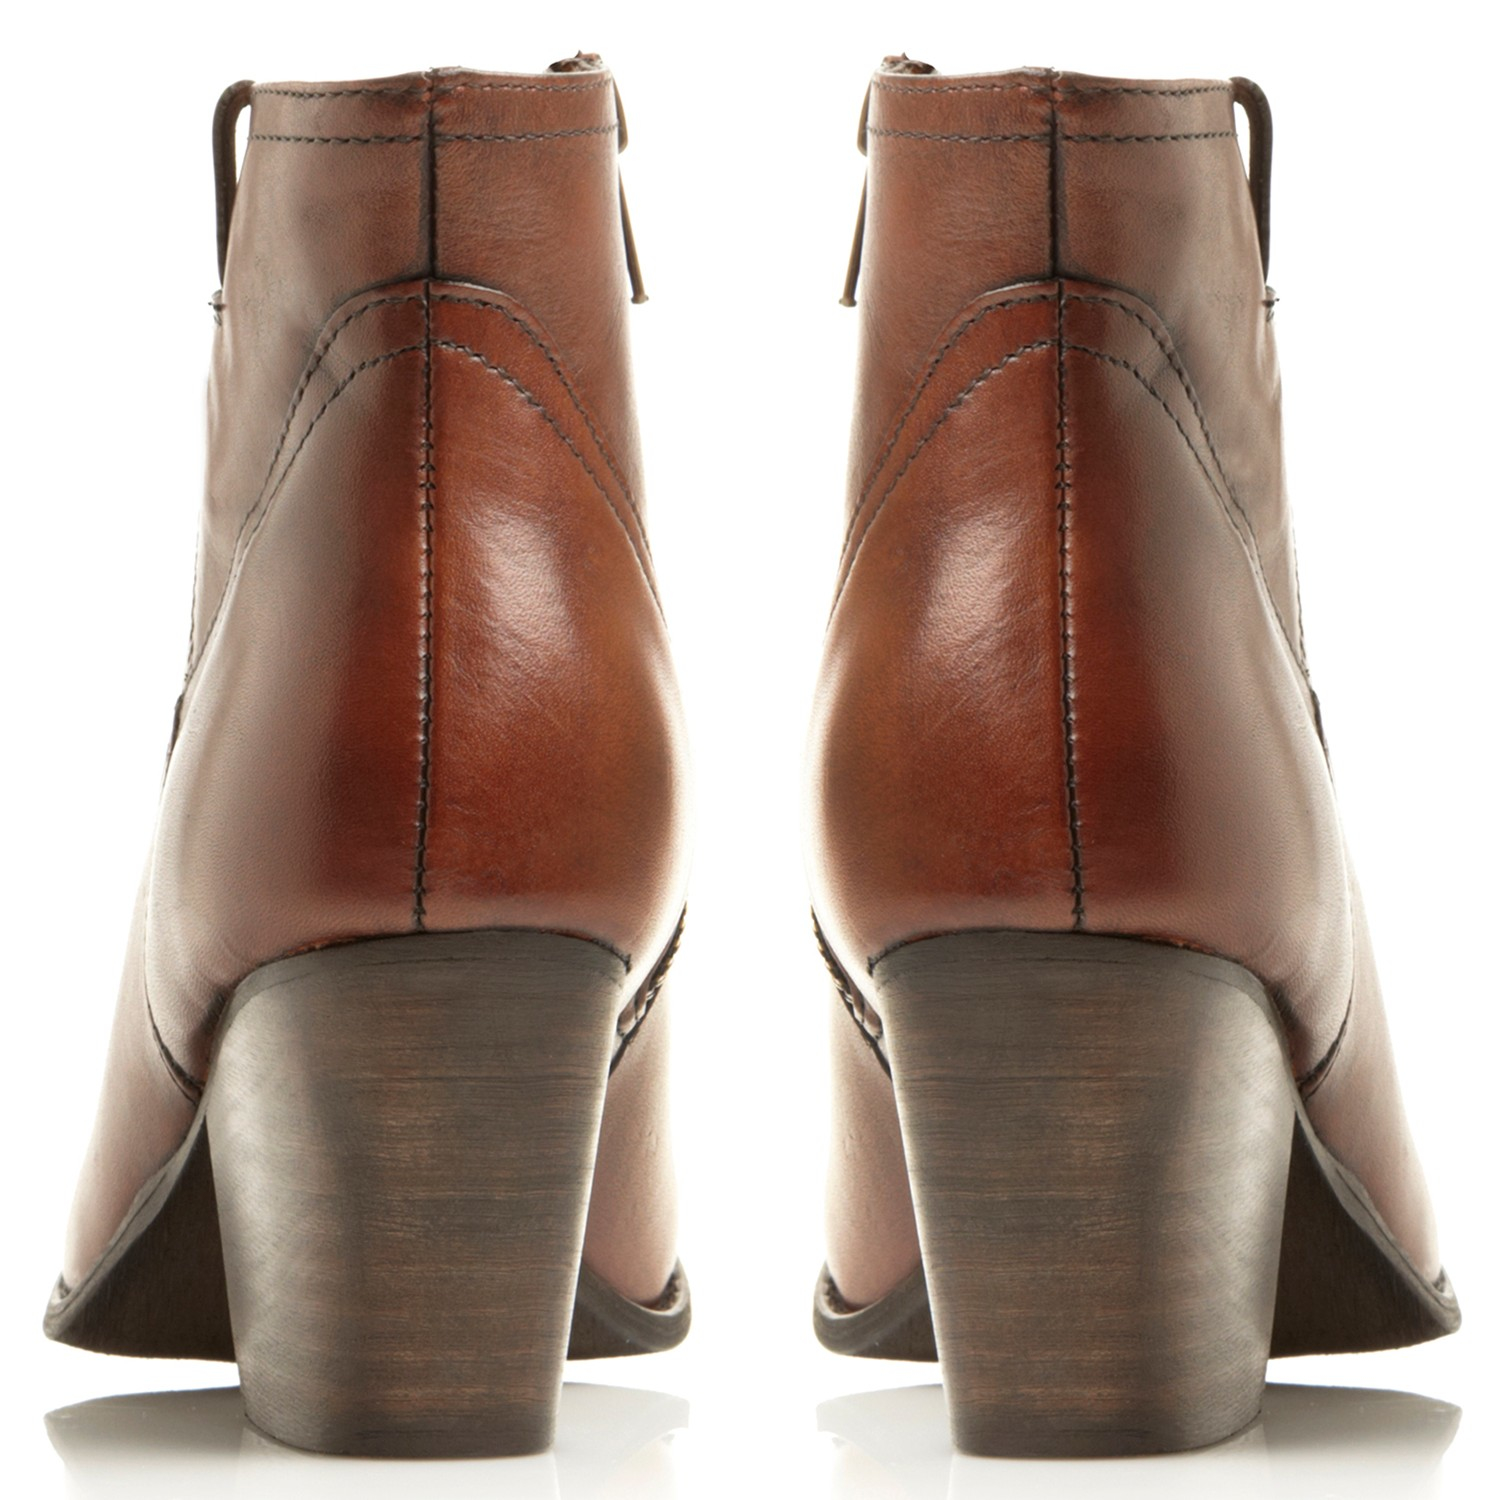 Steve Madden Denim Sogood Block Heeled Western Style Ankle Boots in Tan Leather (Brown)